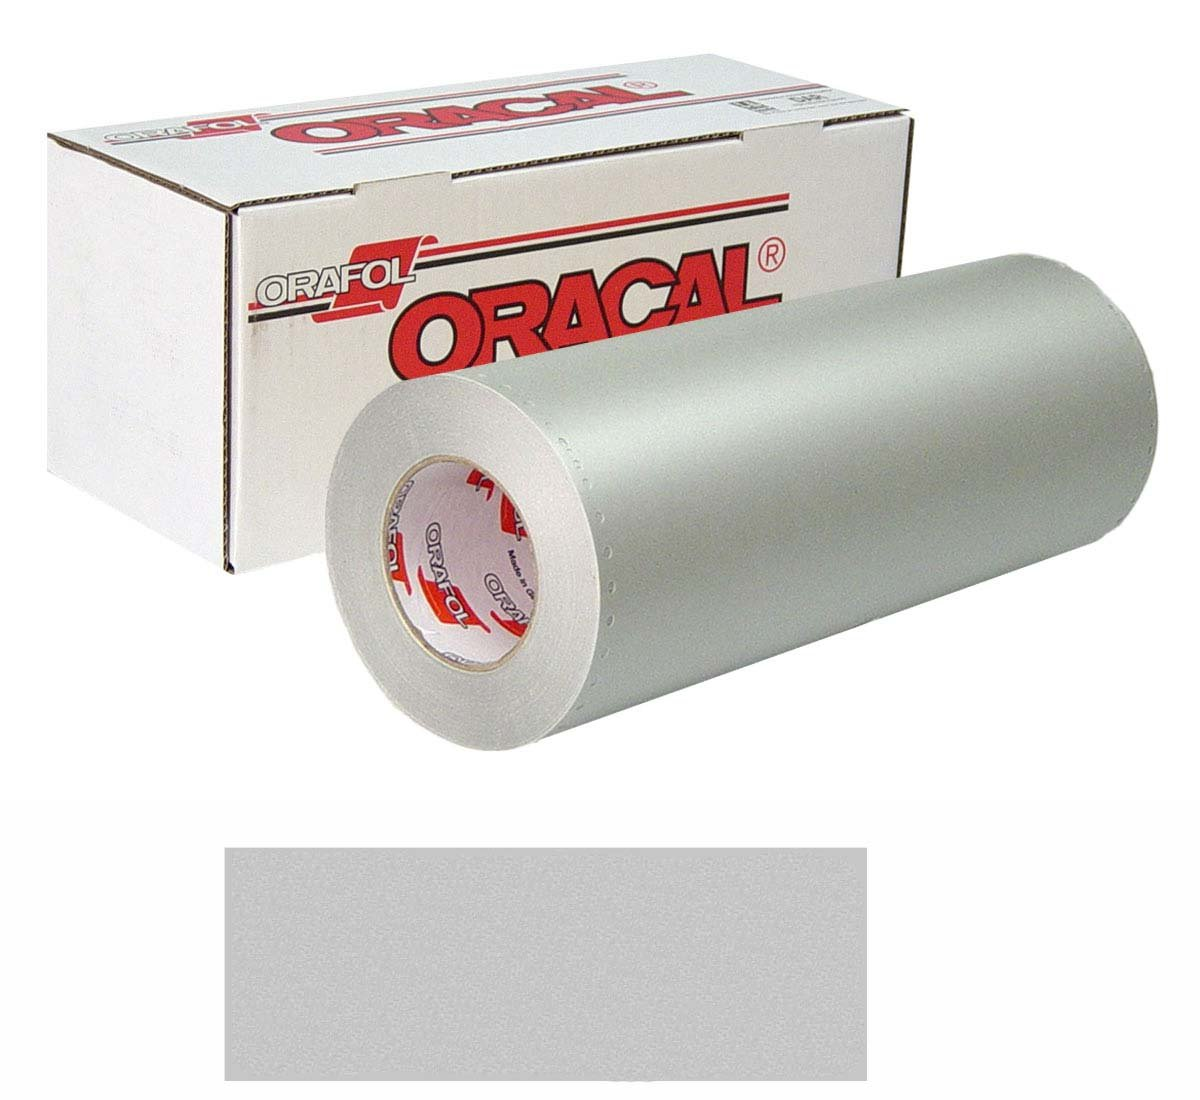 ORACAL 8510 Etched Unp 24In X10Yd 090 Slvr-Fi